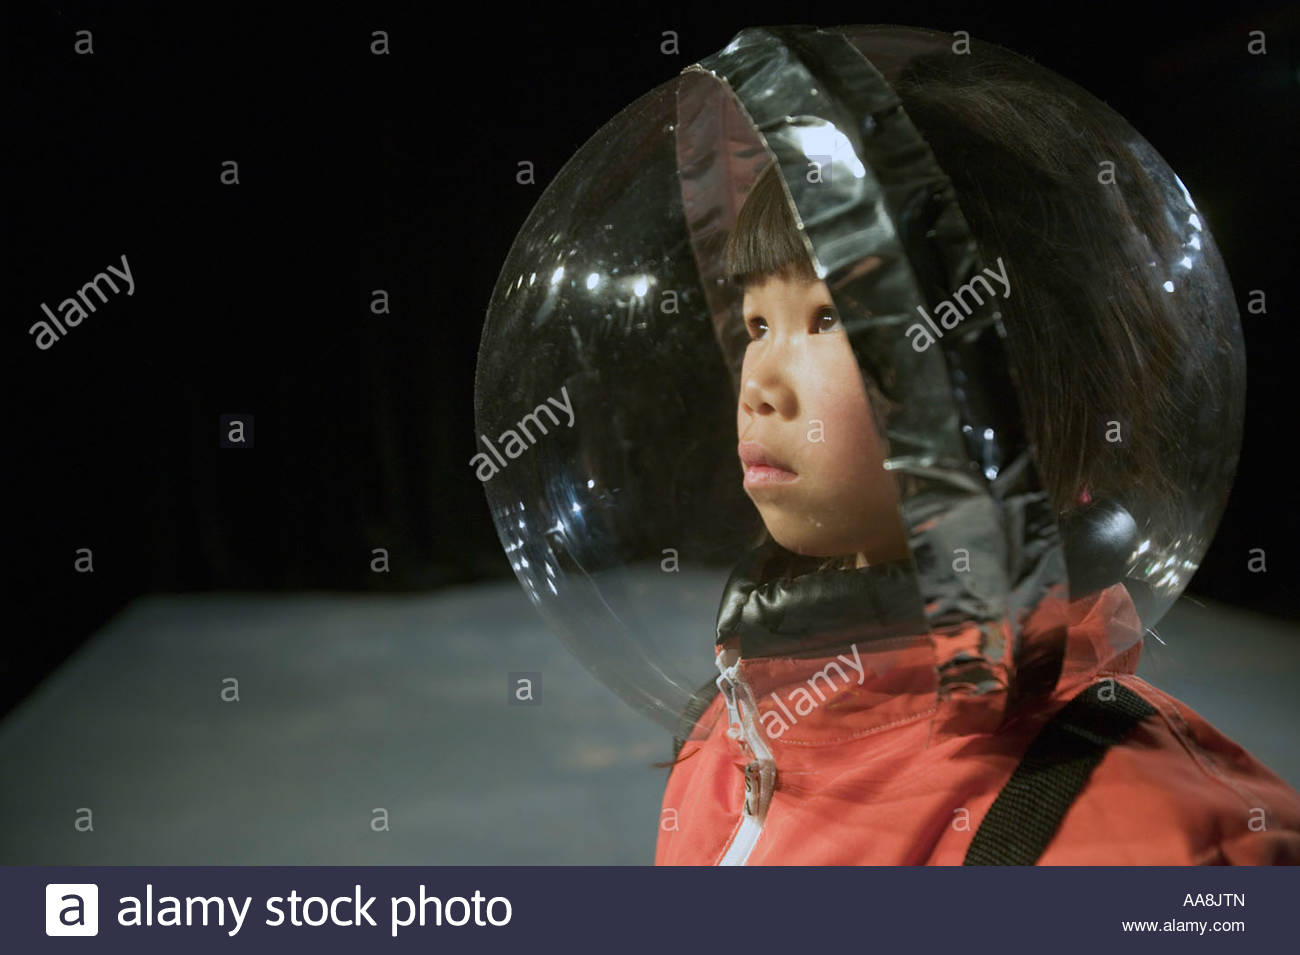 Young Asian boy in astronaut costume - Stock Image